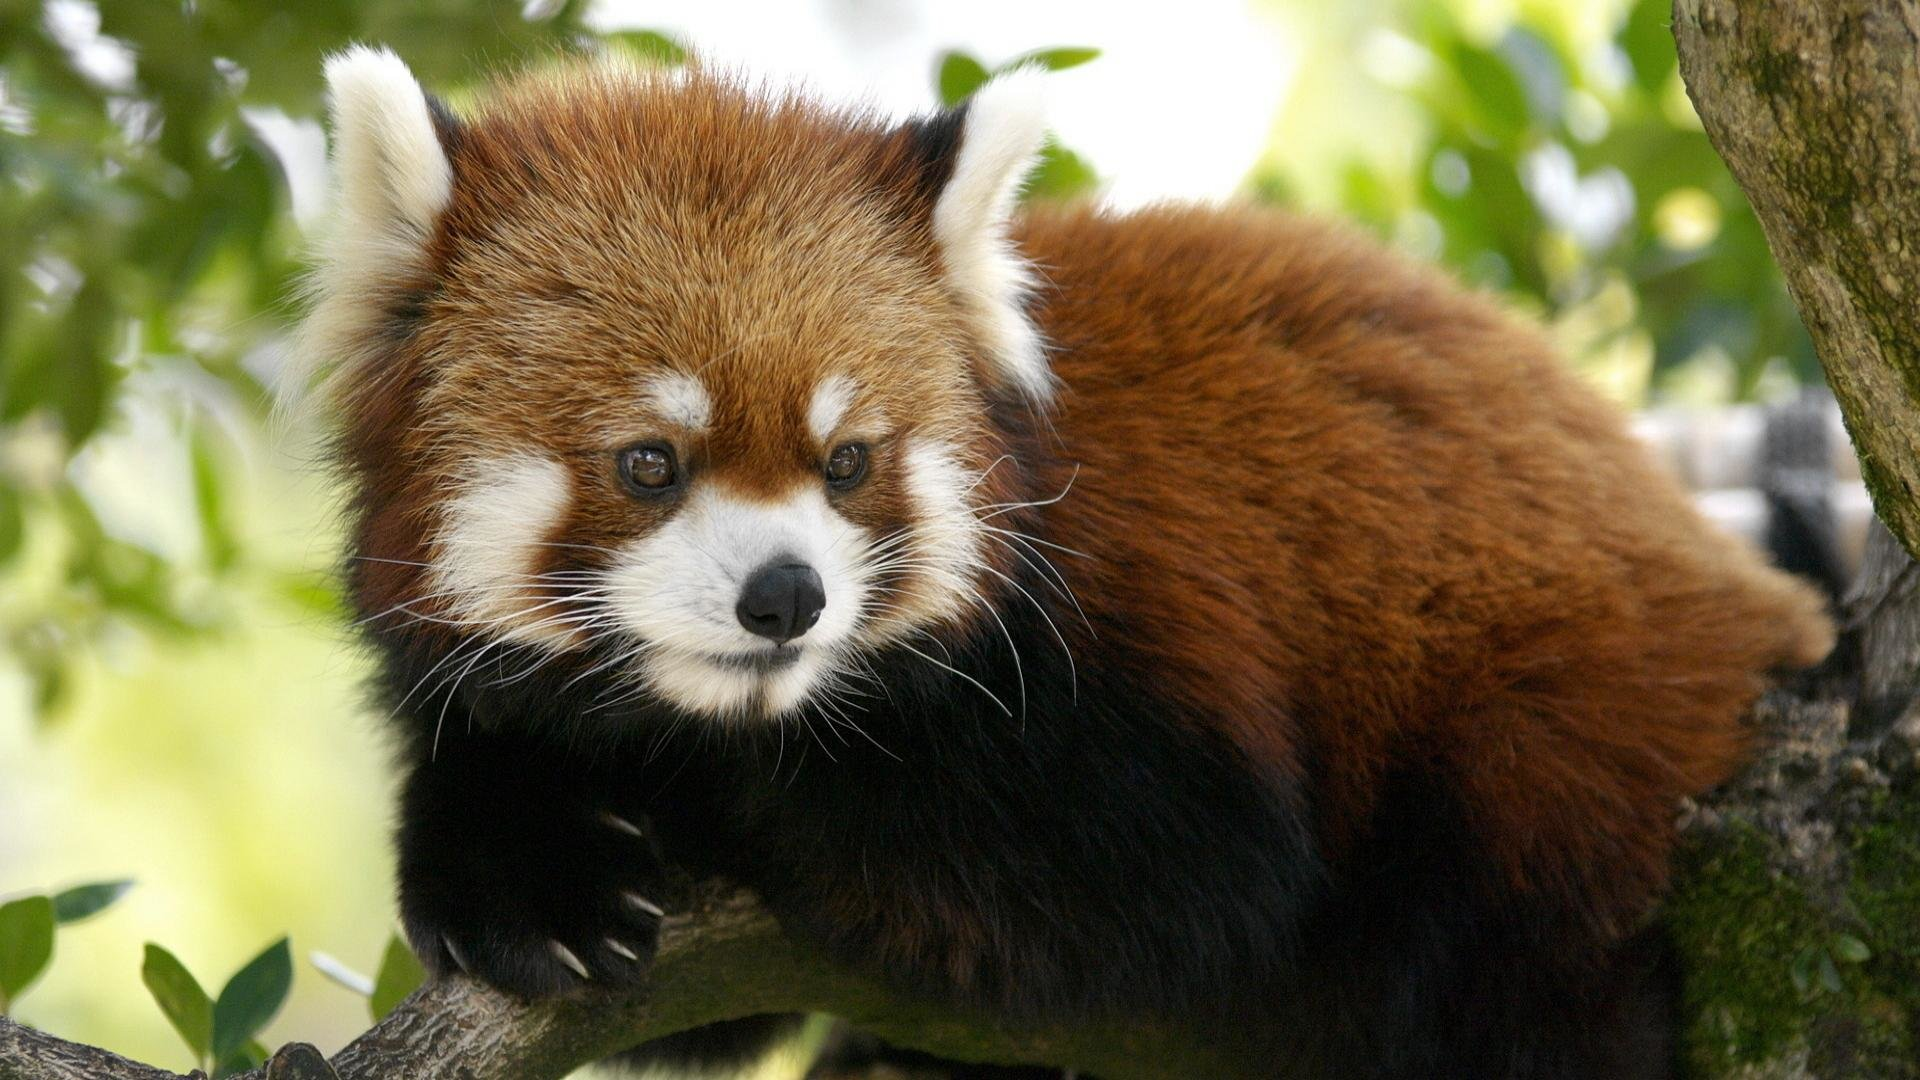 Free Red Panda high quality background ID:64001 for hd 1920x1080 desktop